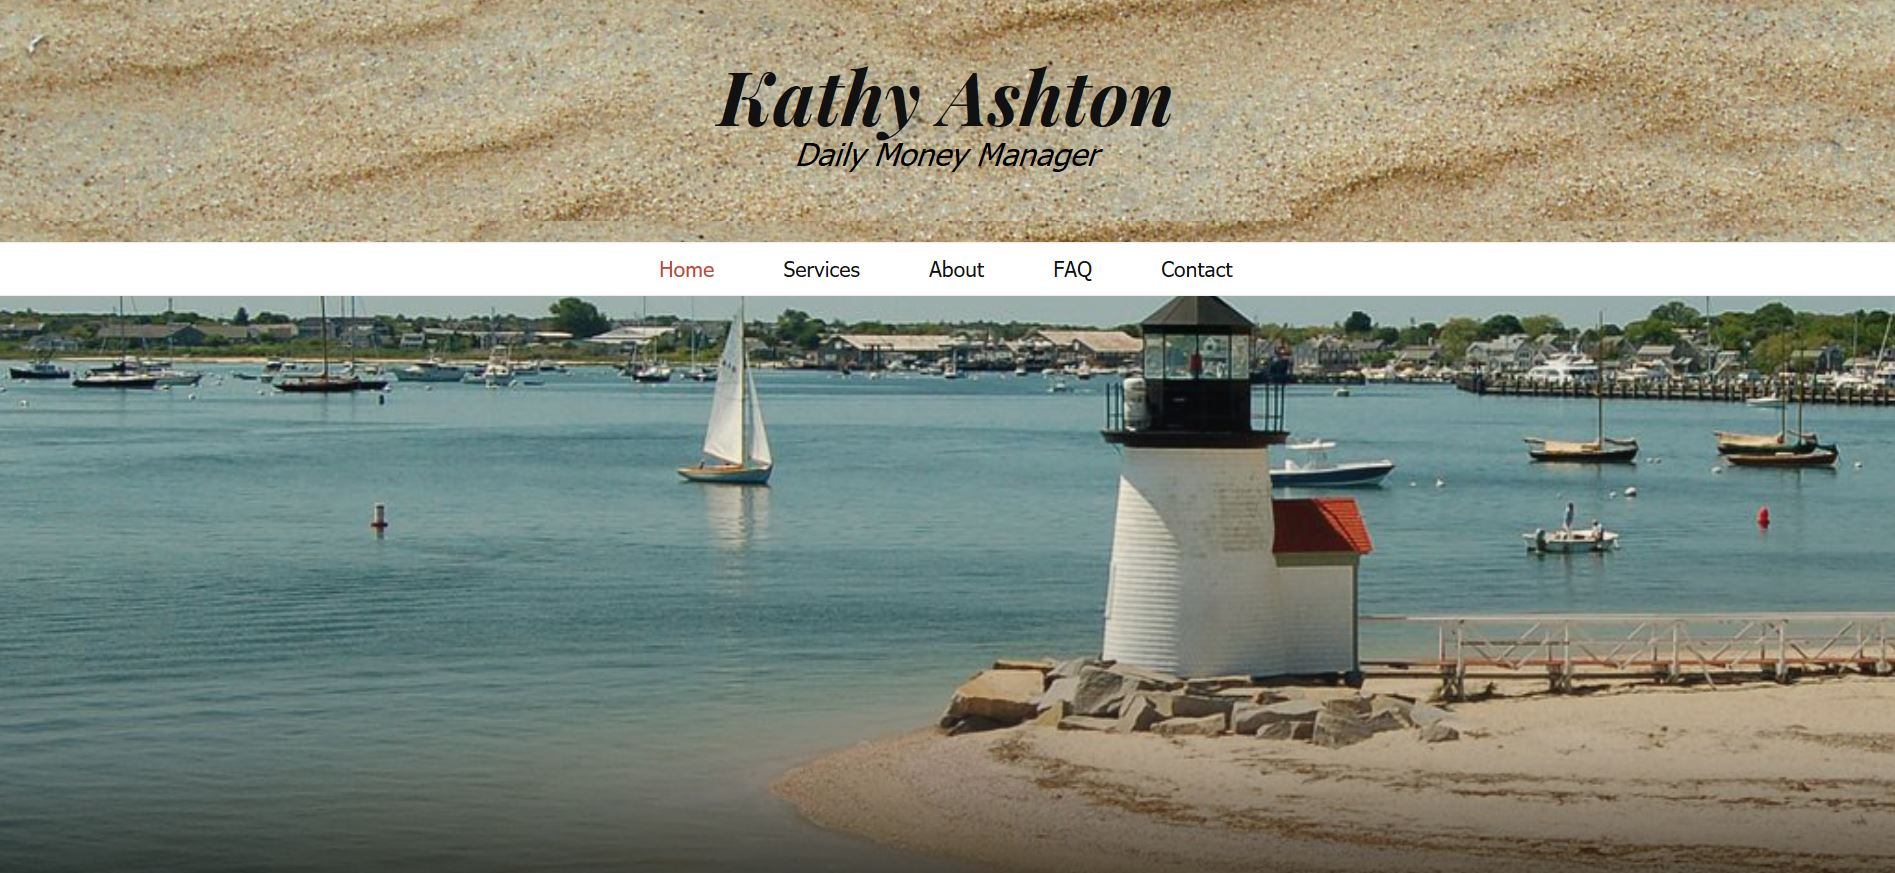 Kathy Ashton, Daily Money Manager